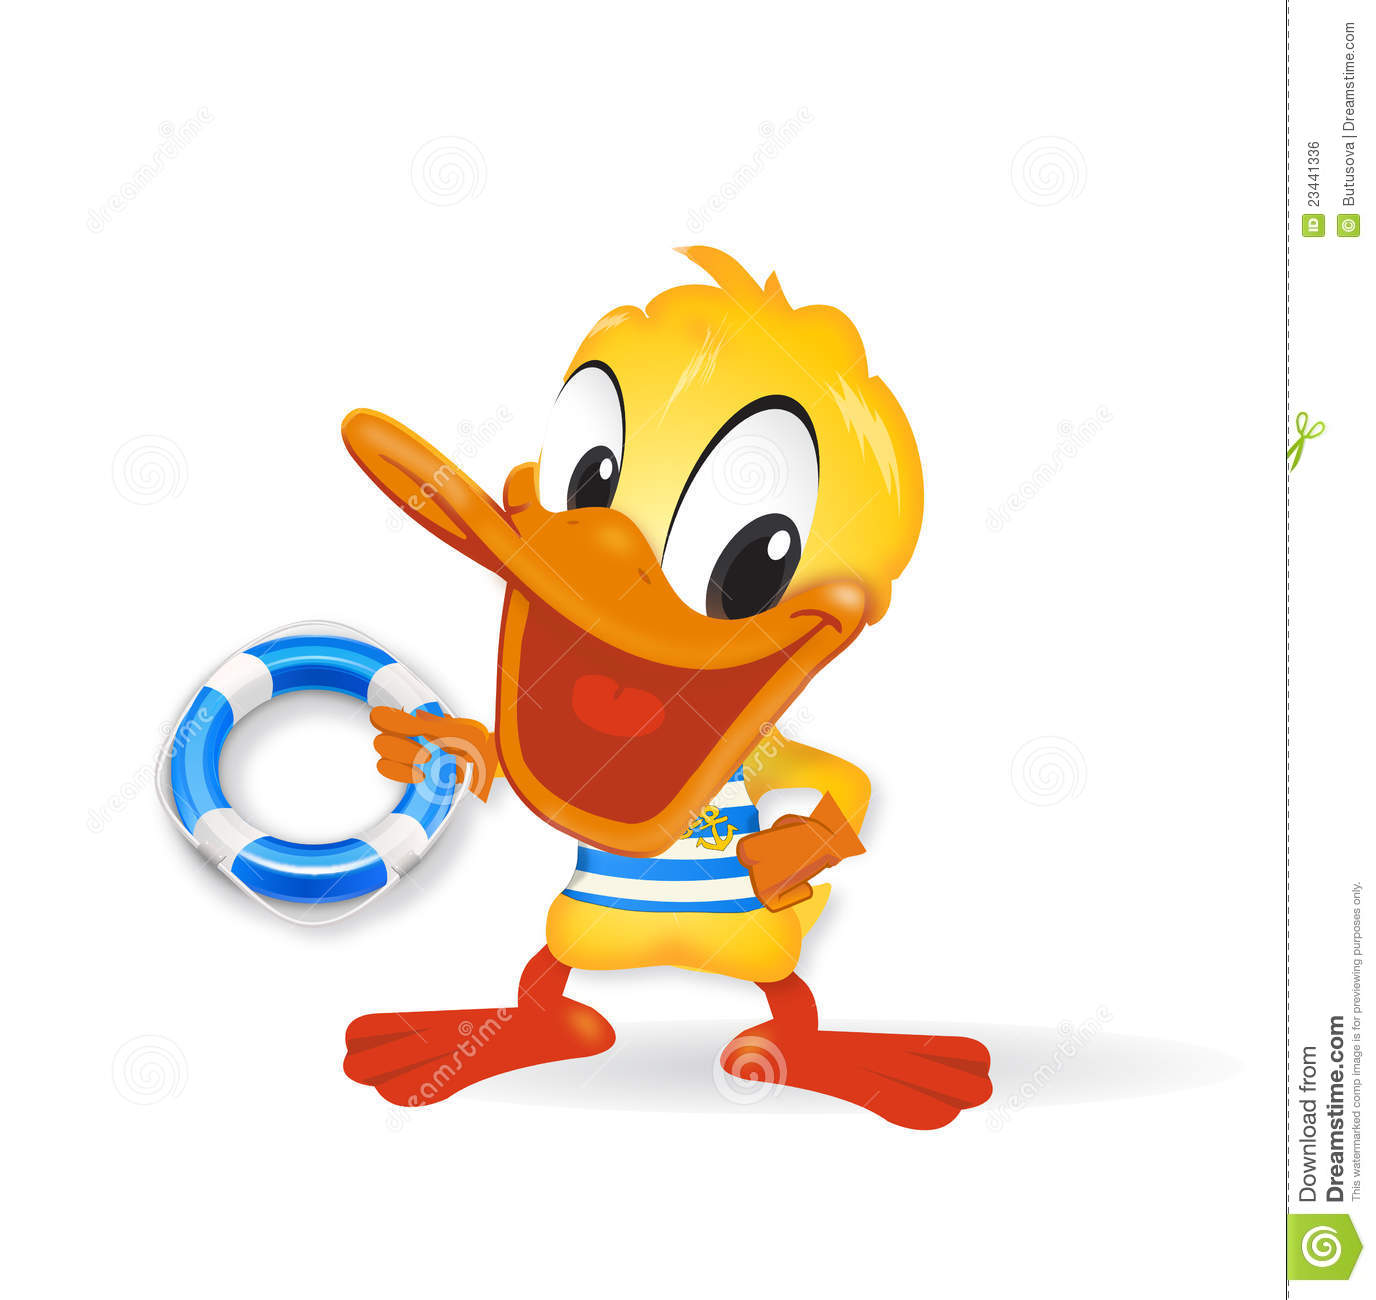 Canard illustration de marin illustration stock image - Illustration canard ...